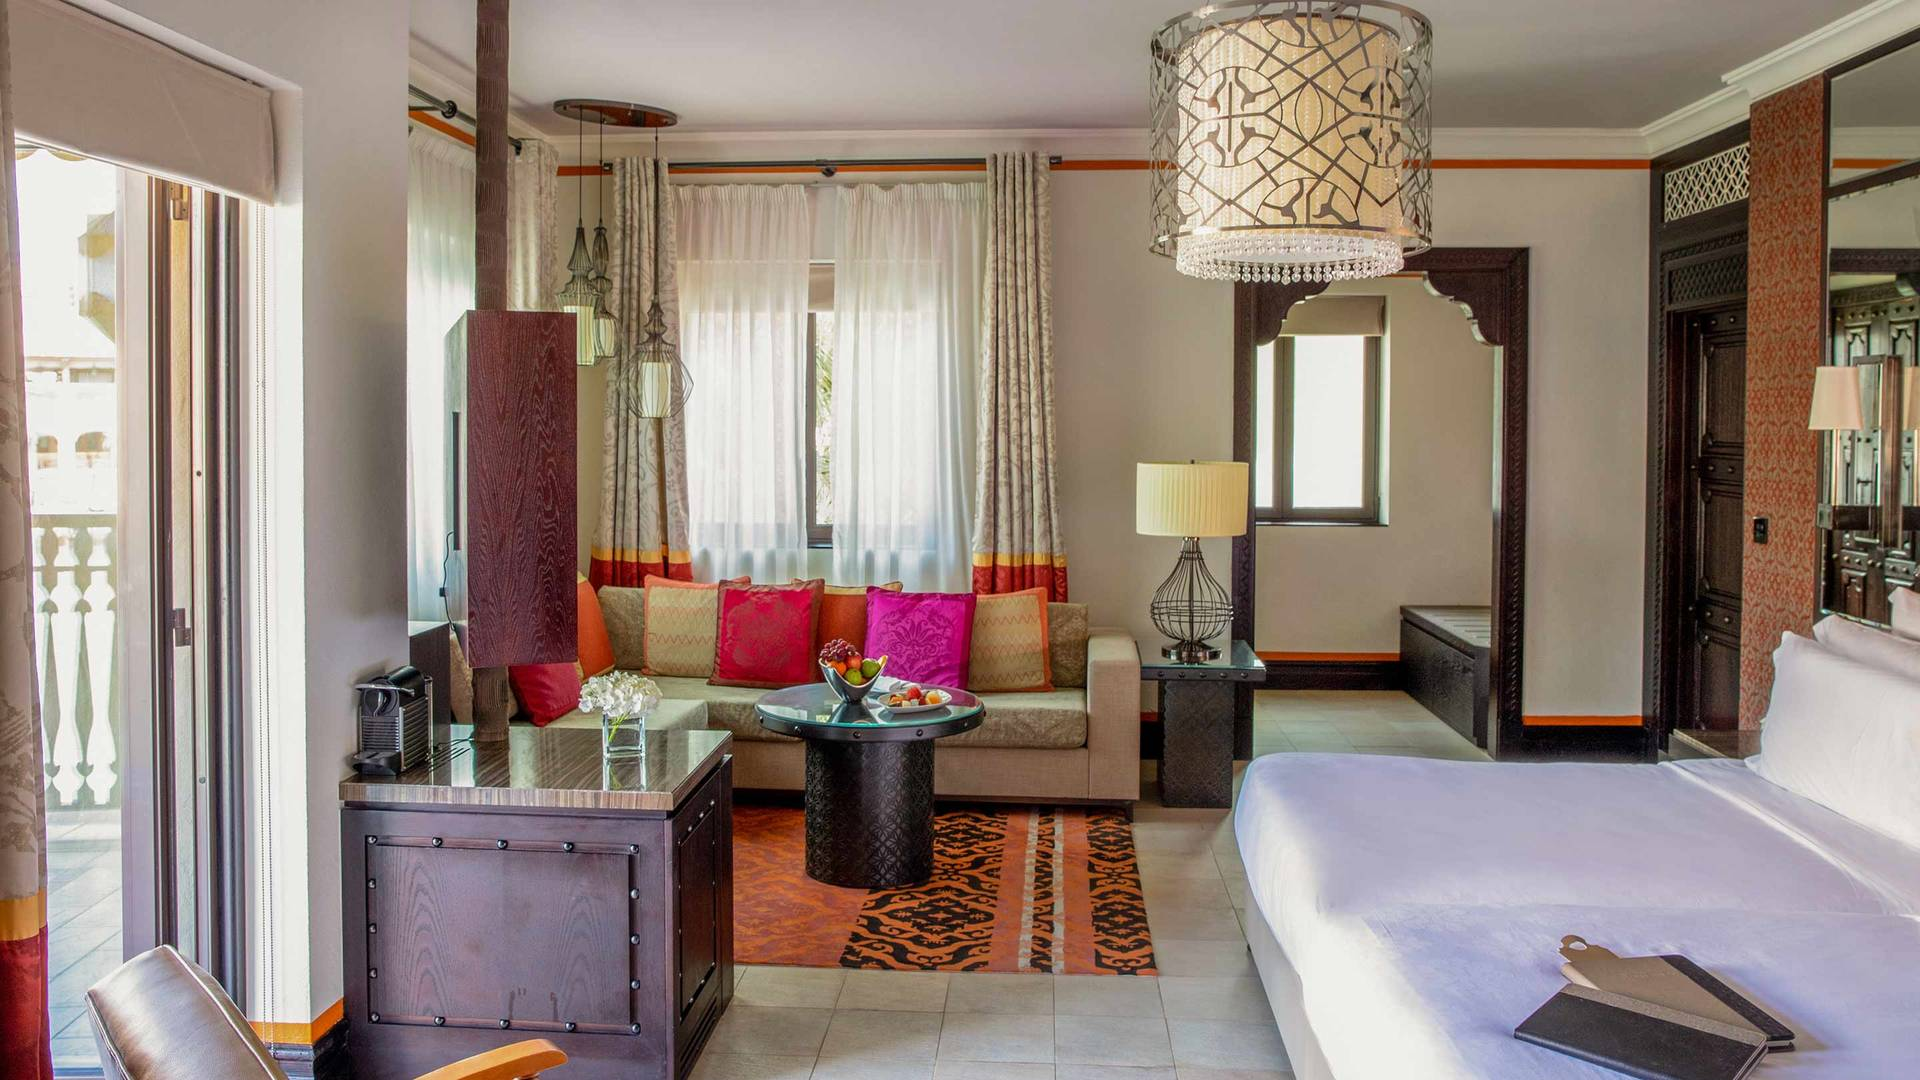 Jumeirah Dar Al Masayaf Arabian summerhouse Deluxe bedroom and living area